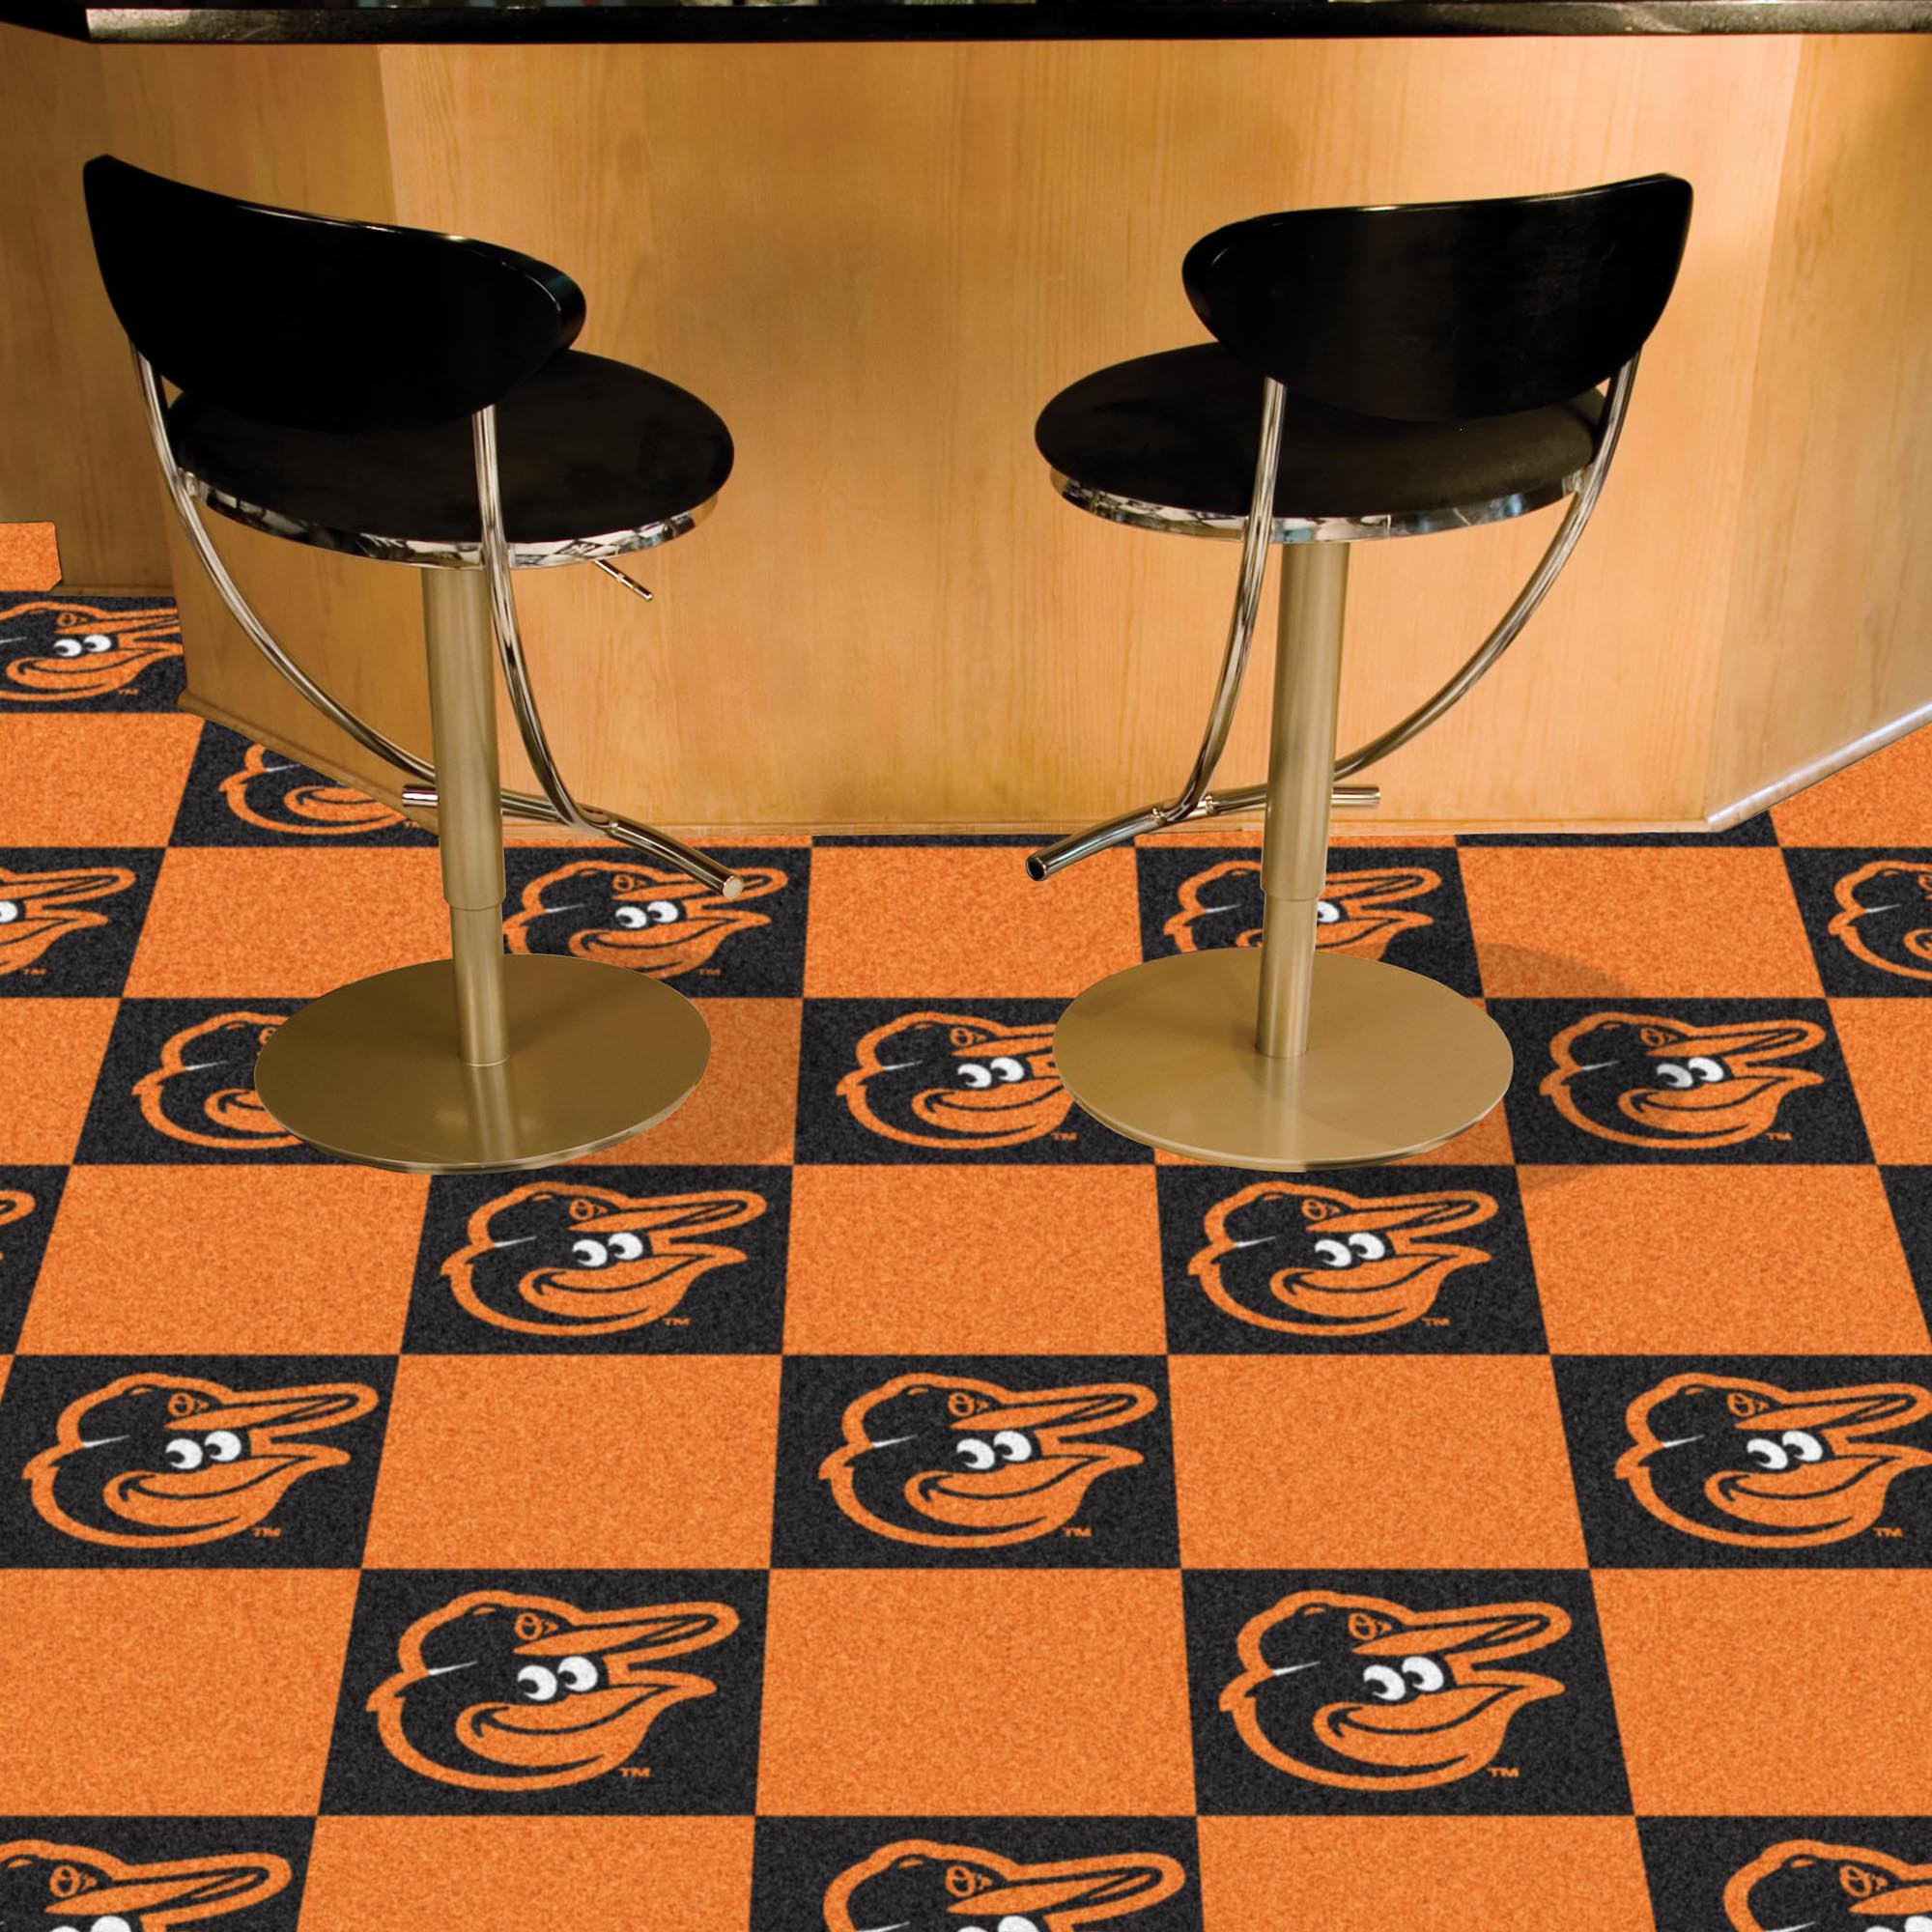 Baltimore Orioles Cartoon Bird Carpet Tiles 18x18 in.